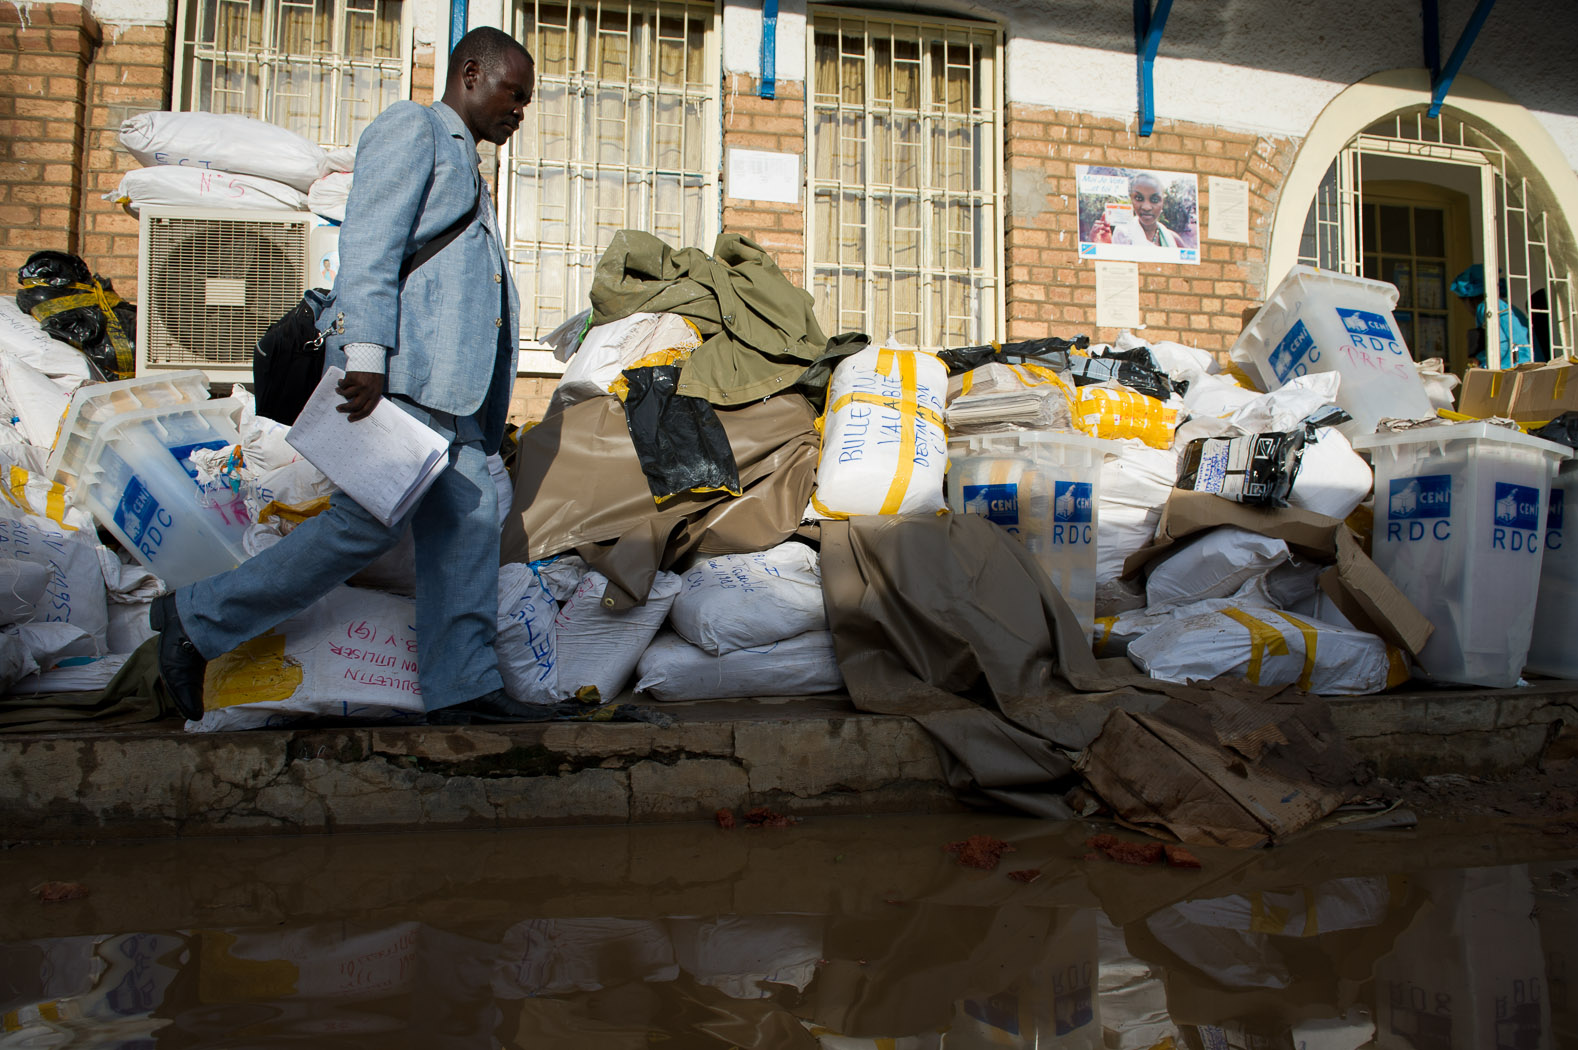 The Independent National Electoral Commission (CENI) building was ill-prepared to deal with the volume of ballots, leaving stacks of cast-ballots and voting materials outside in the rains.